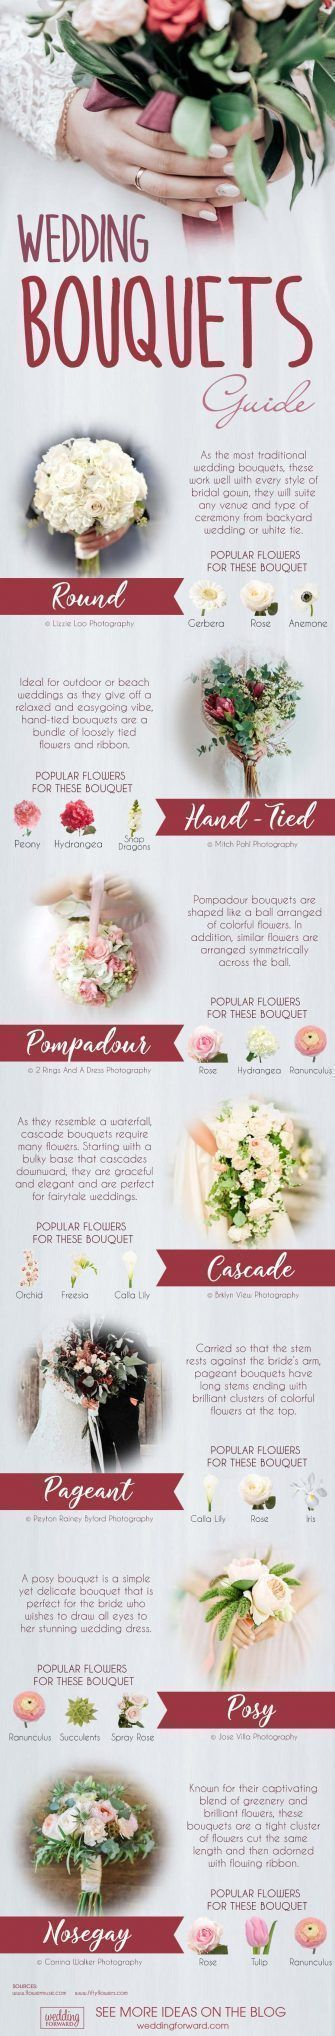 8 Wedding Flowers Infographics That Will Help You ❤ wedding flowers infographics wedding bouquets guide ❤ See more: http://www.weddingforward.com/wedding-flowers-infographics/ #weddingforward #wedding #bride #weddinginfographic